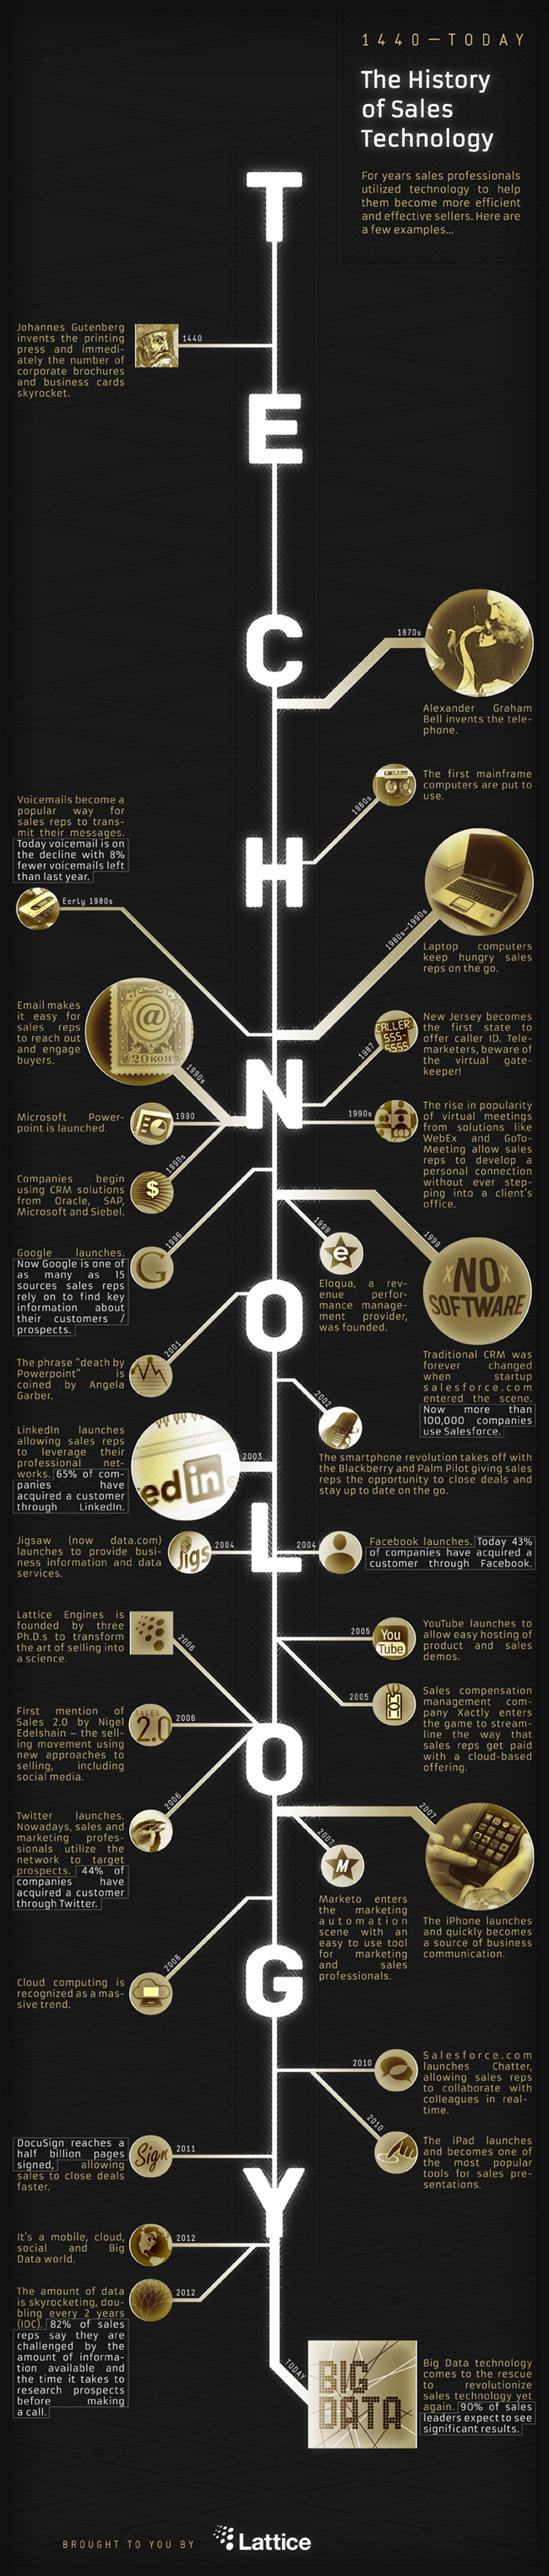 history of business technology